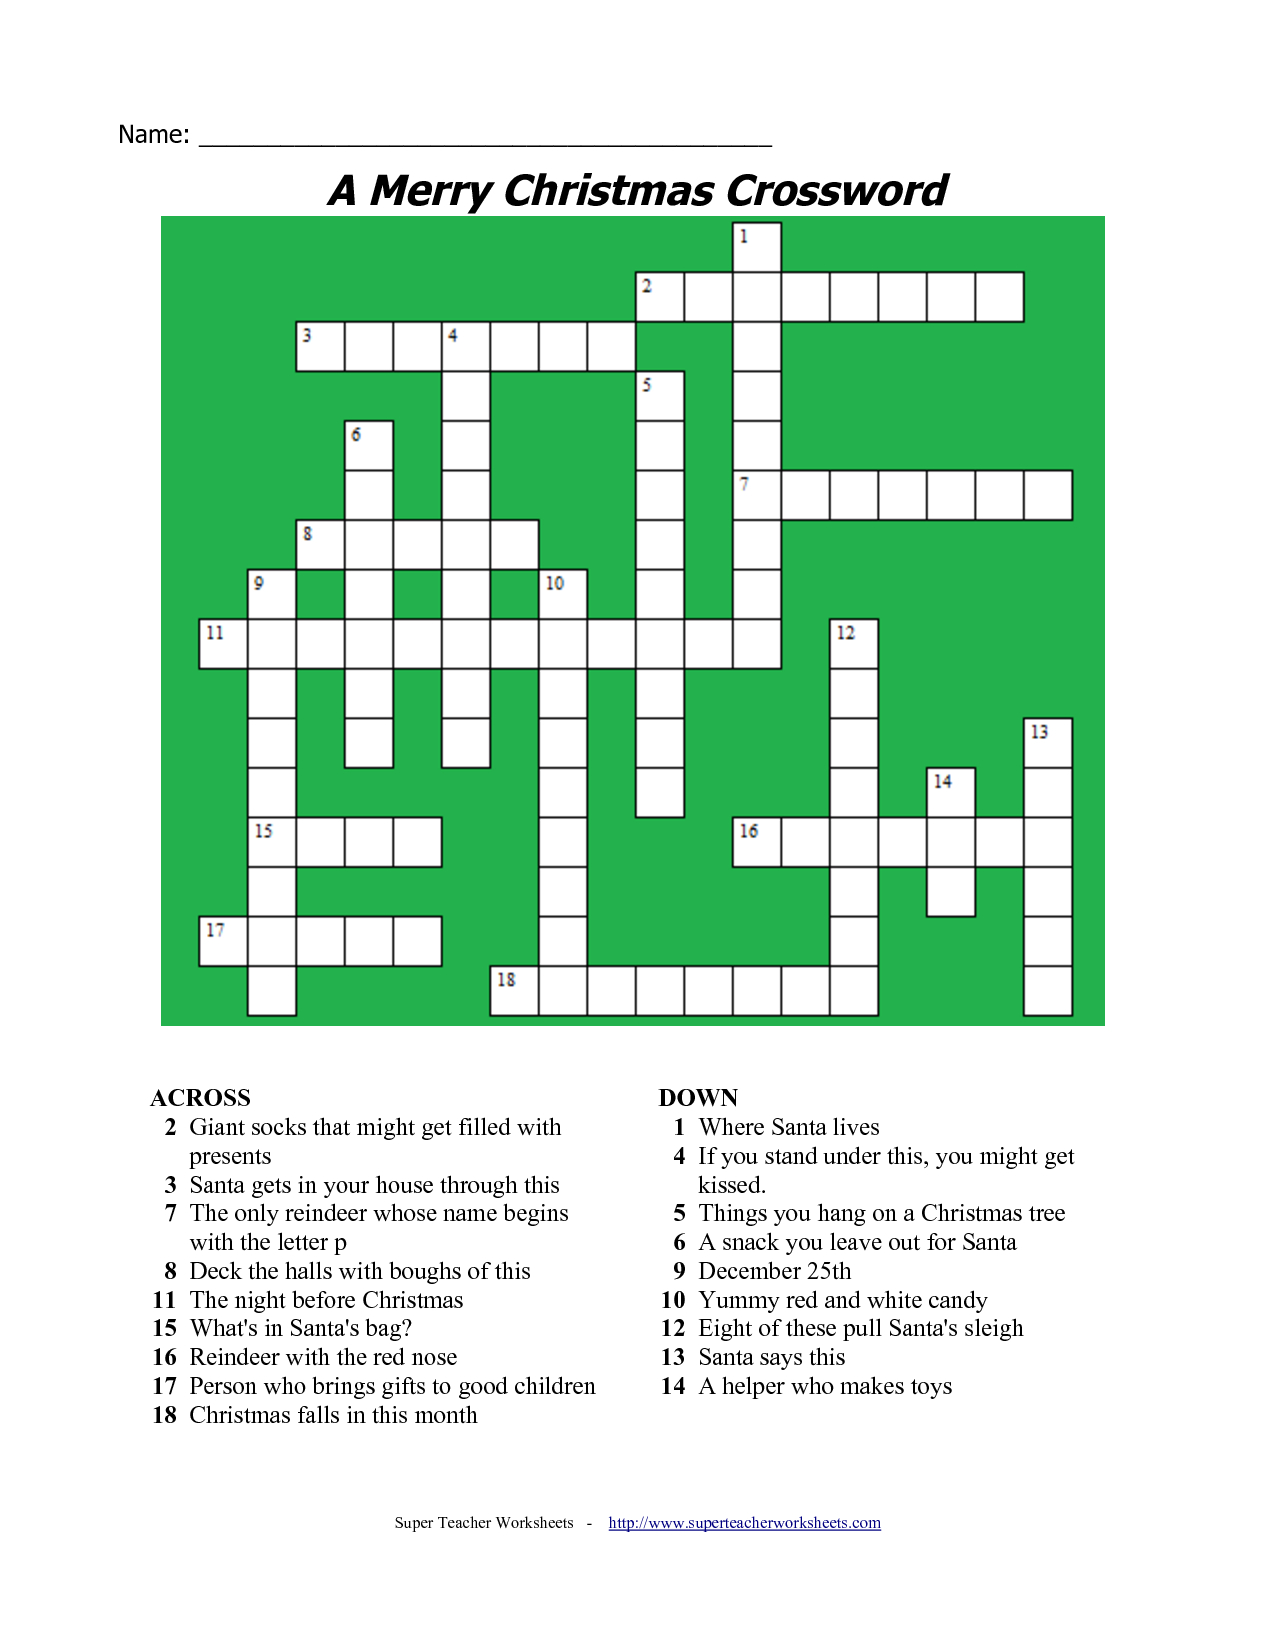 20 Fun Printable Christmas Crossword Puzzles | Kittybabylove - Free Printable Christmas Crossword Puzzles For Middle School